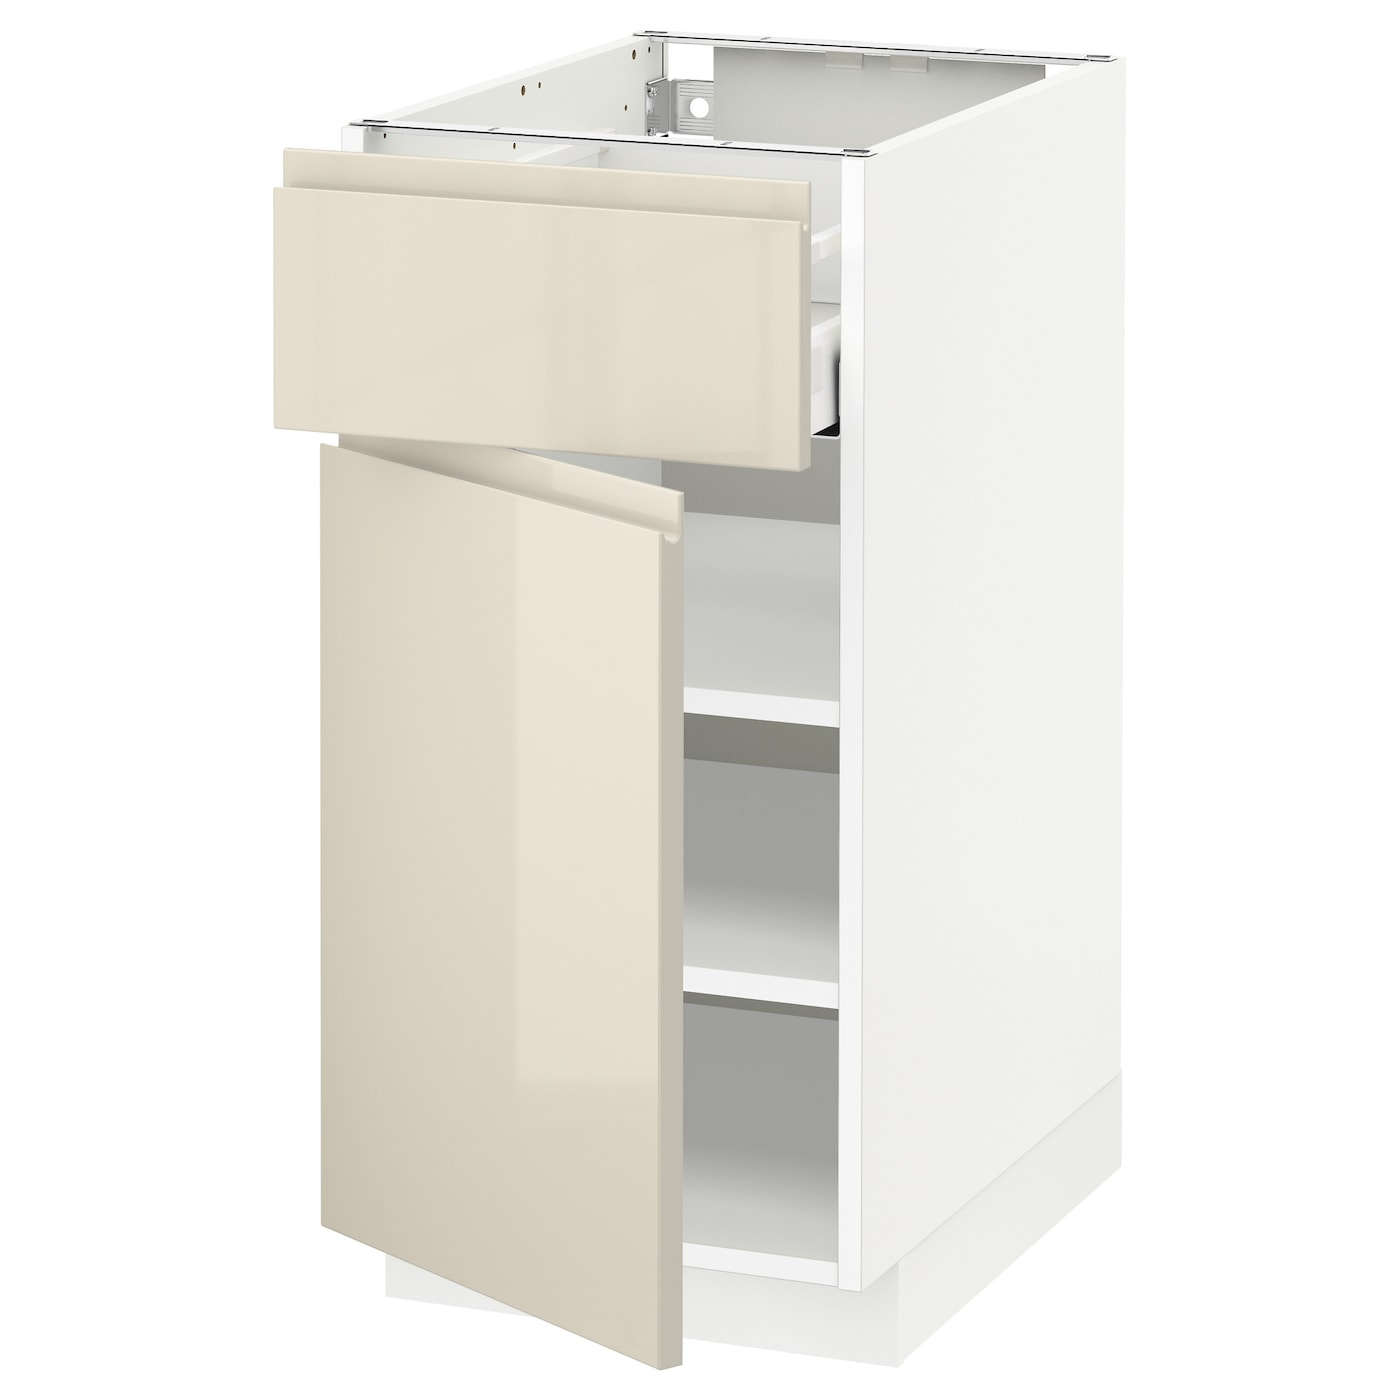 Ringhult Drawer Front High Gloss White 60 X 40 Cm: METOD/MAXIMERA Base Cabinet With Drawer/door White/voxtorp